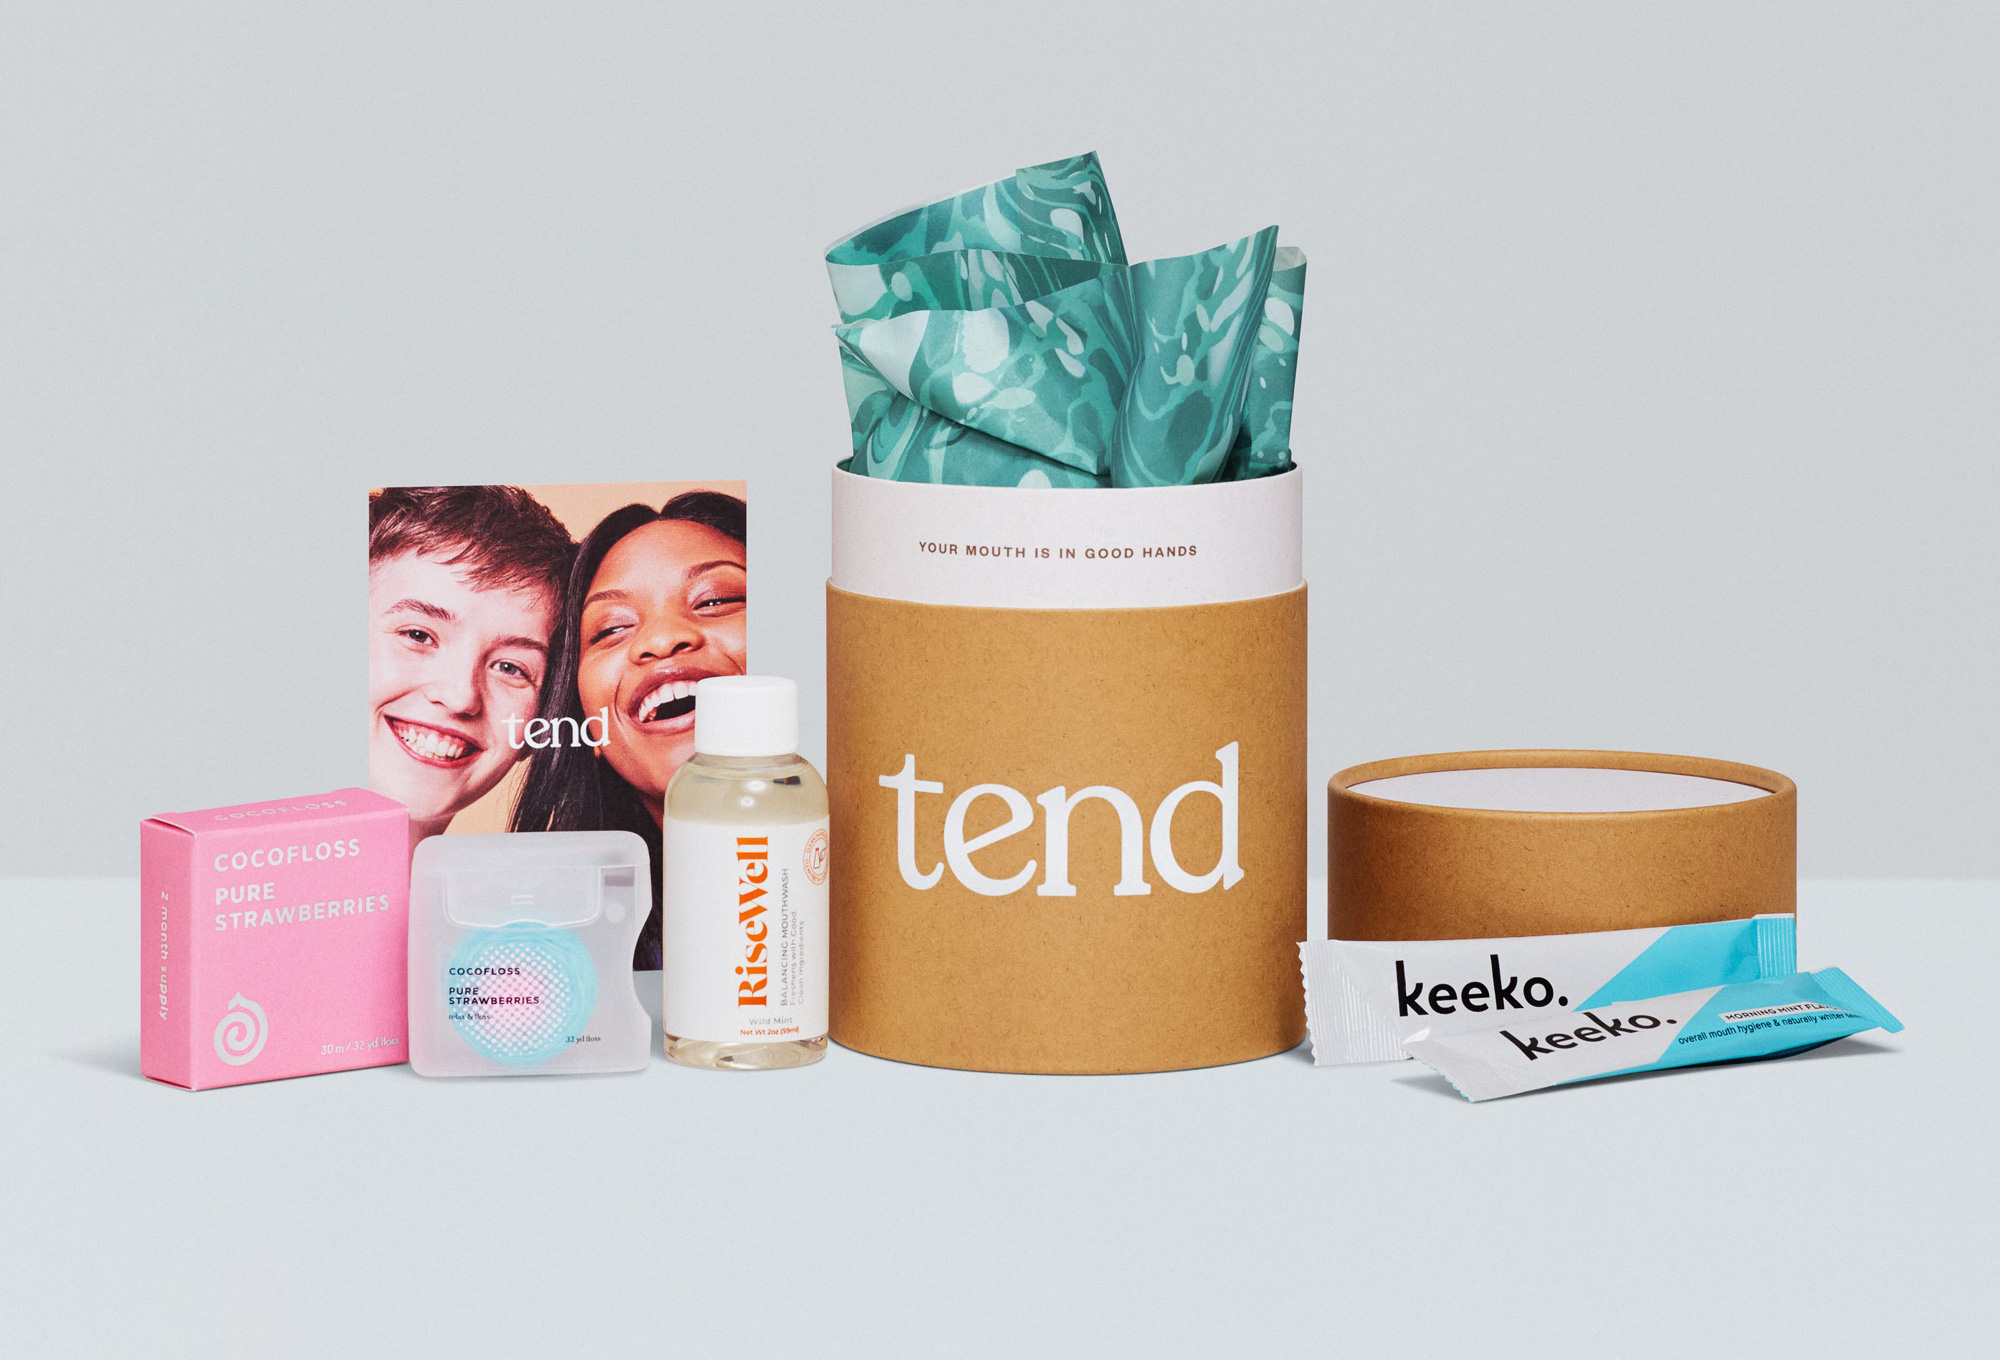 New Logo and Identity for Tend by Mythology